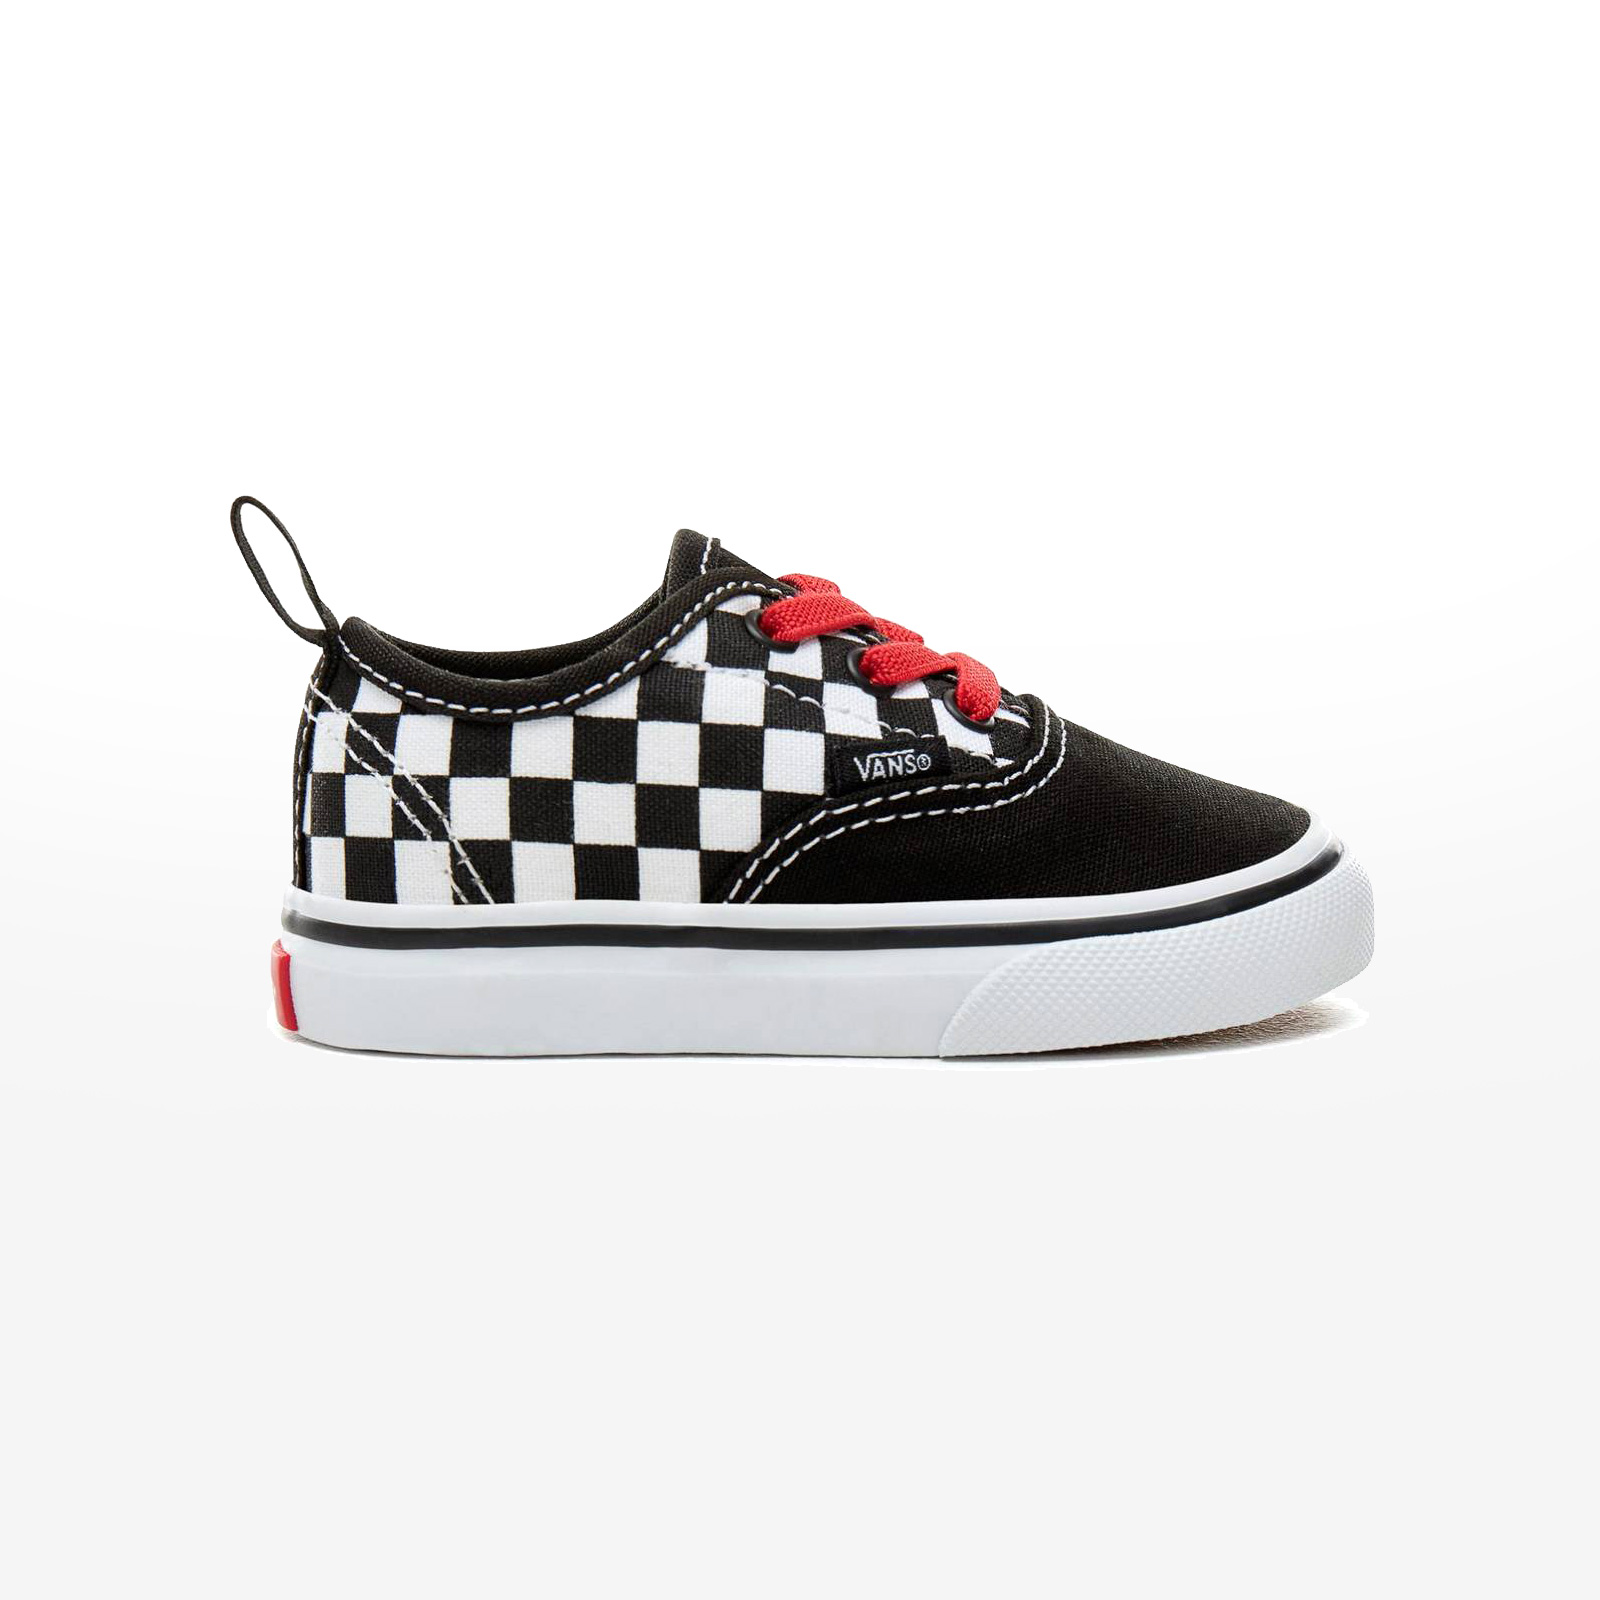 bbaf6d8bb32 -50% Sportcafe Vans – TD AUTHENTIC ELASTIC CHECKERBOAR – (CHECKERBOARD)  BLACK/RED/TRUE WHITE